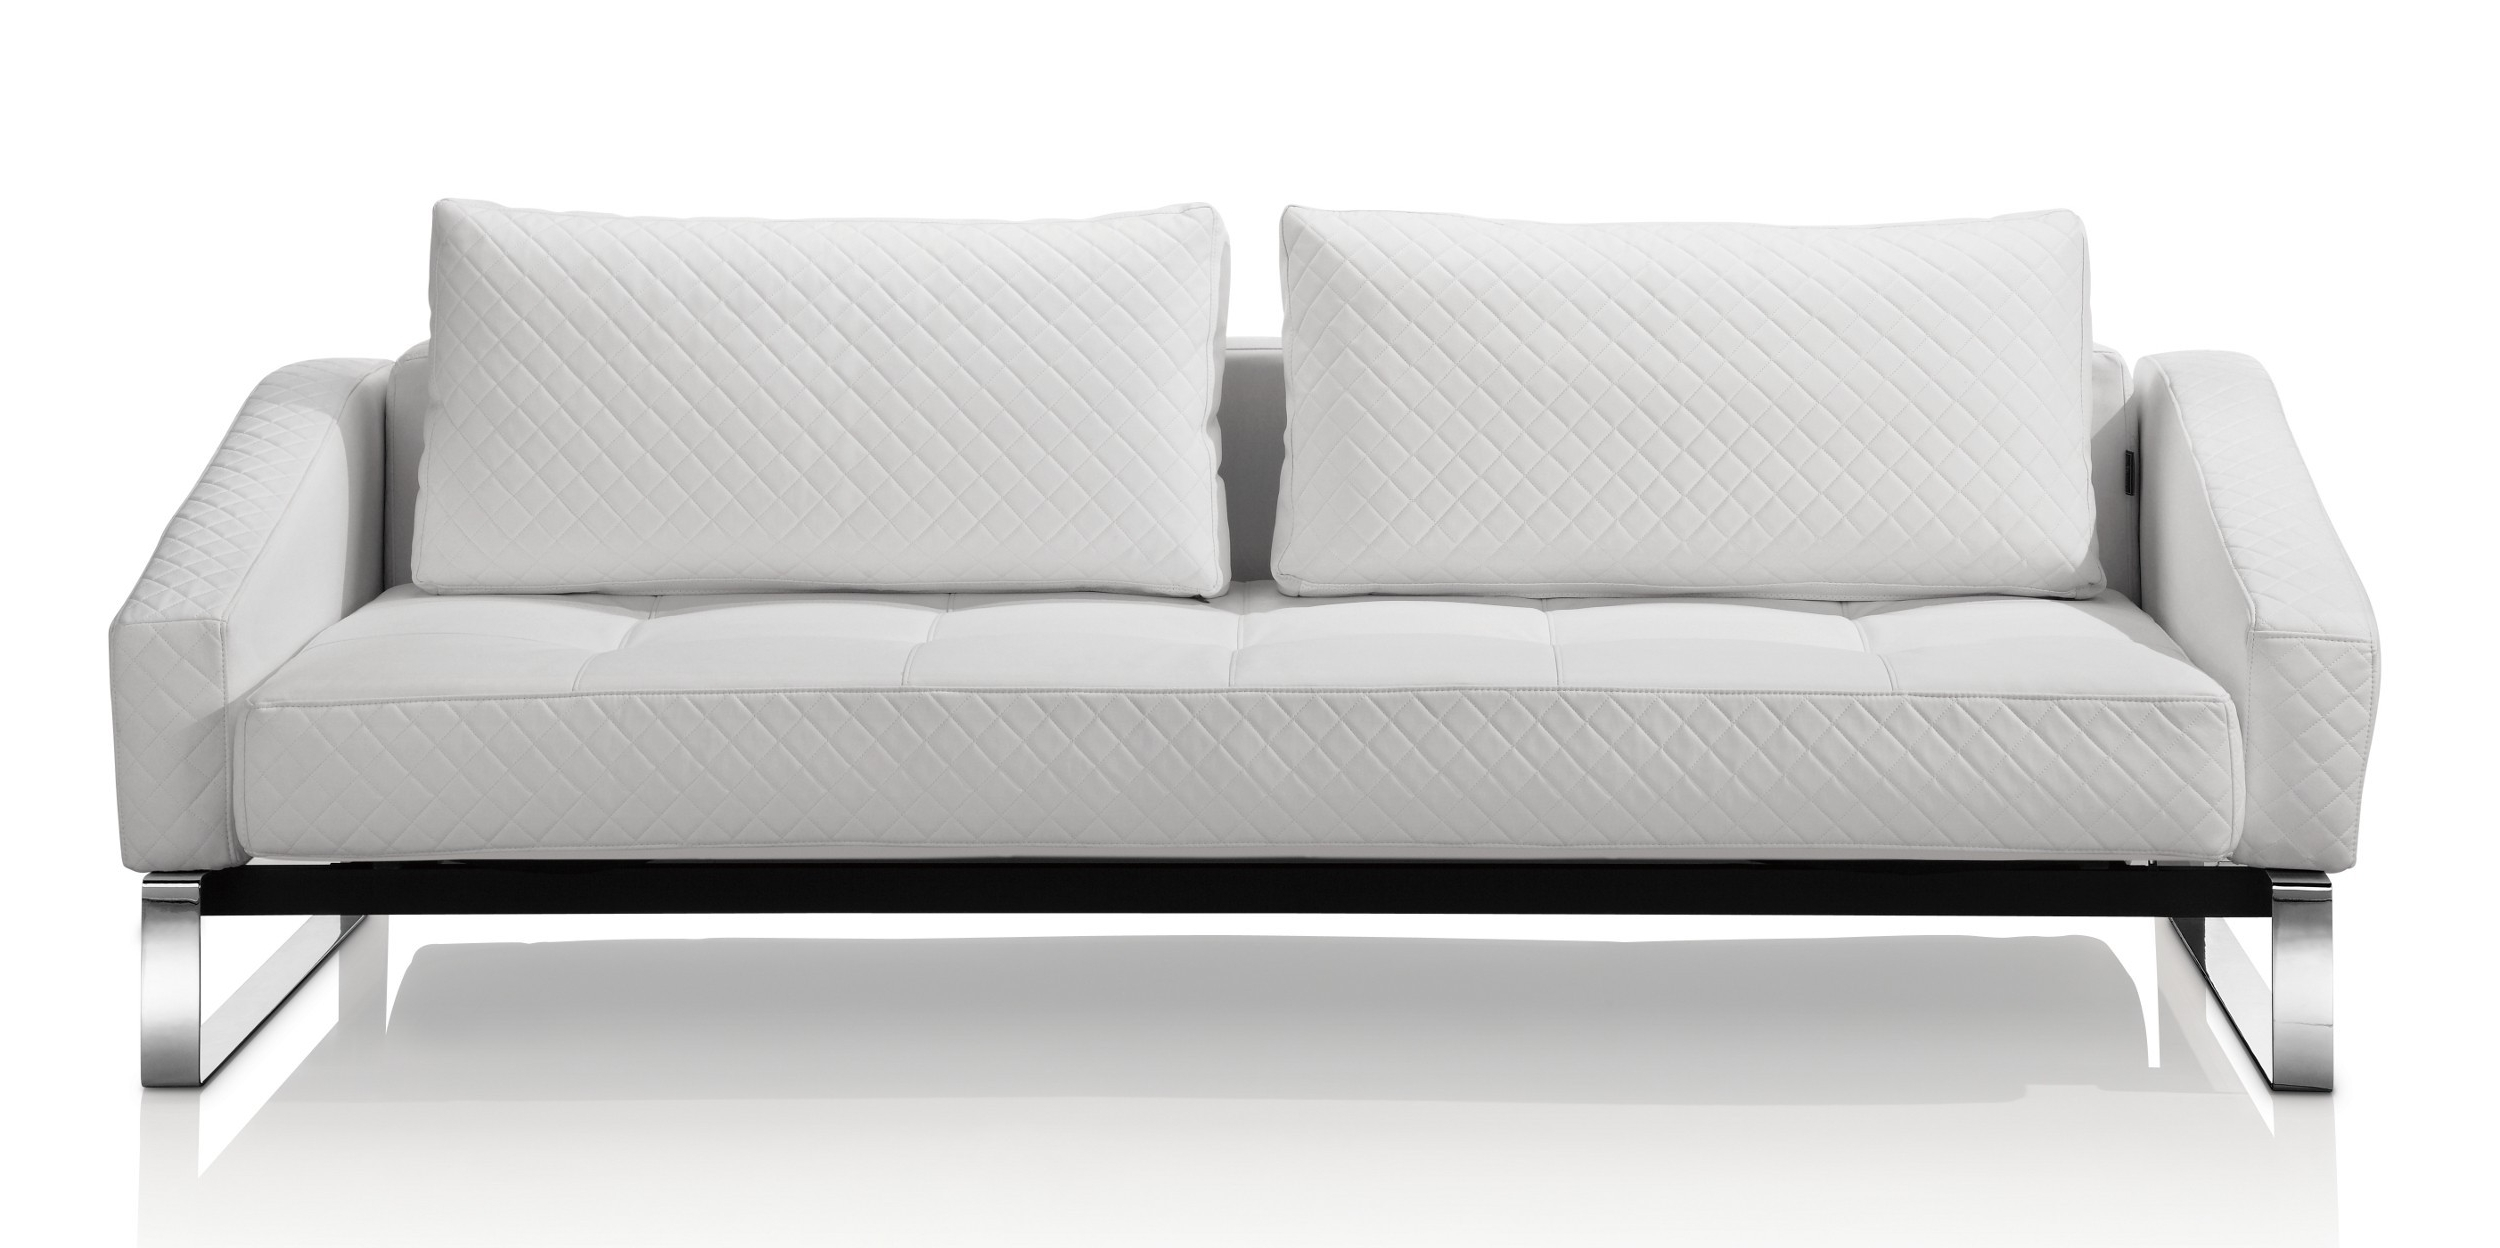 White Sofa Chairs Intended For Most Recent Leather Sofa Modern Sleeper Wonderful Cado Furniture Watson (View 18 of 20)